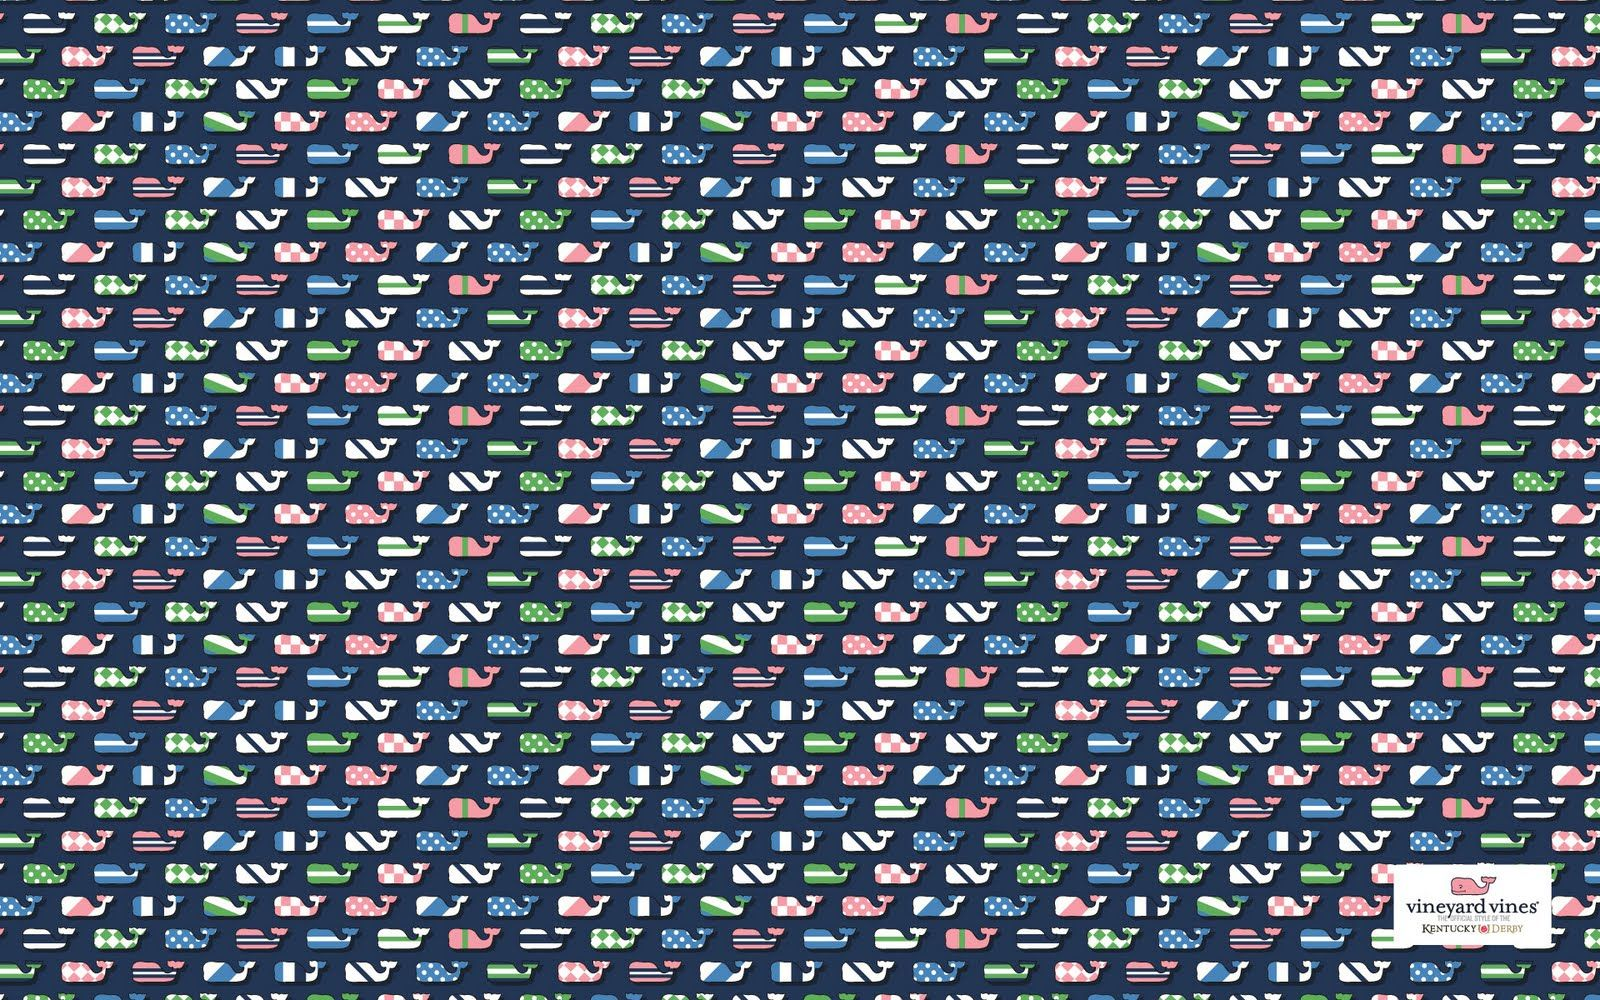 vineyard vines wallpaper wwwpixsharkcom images